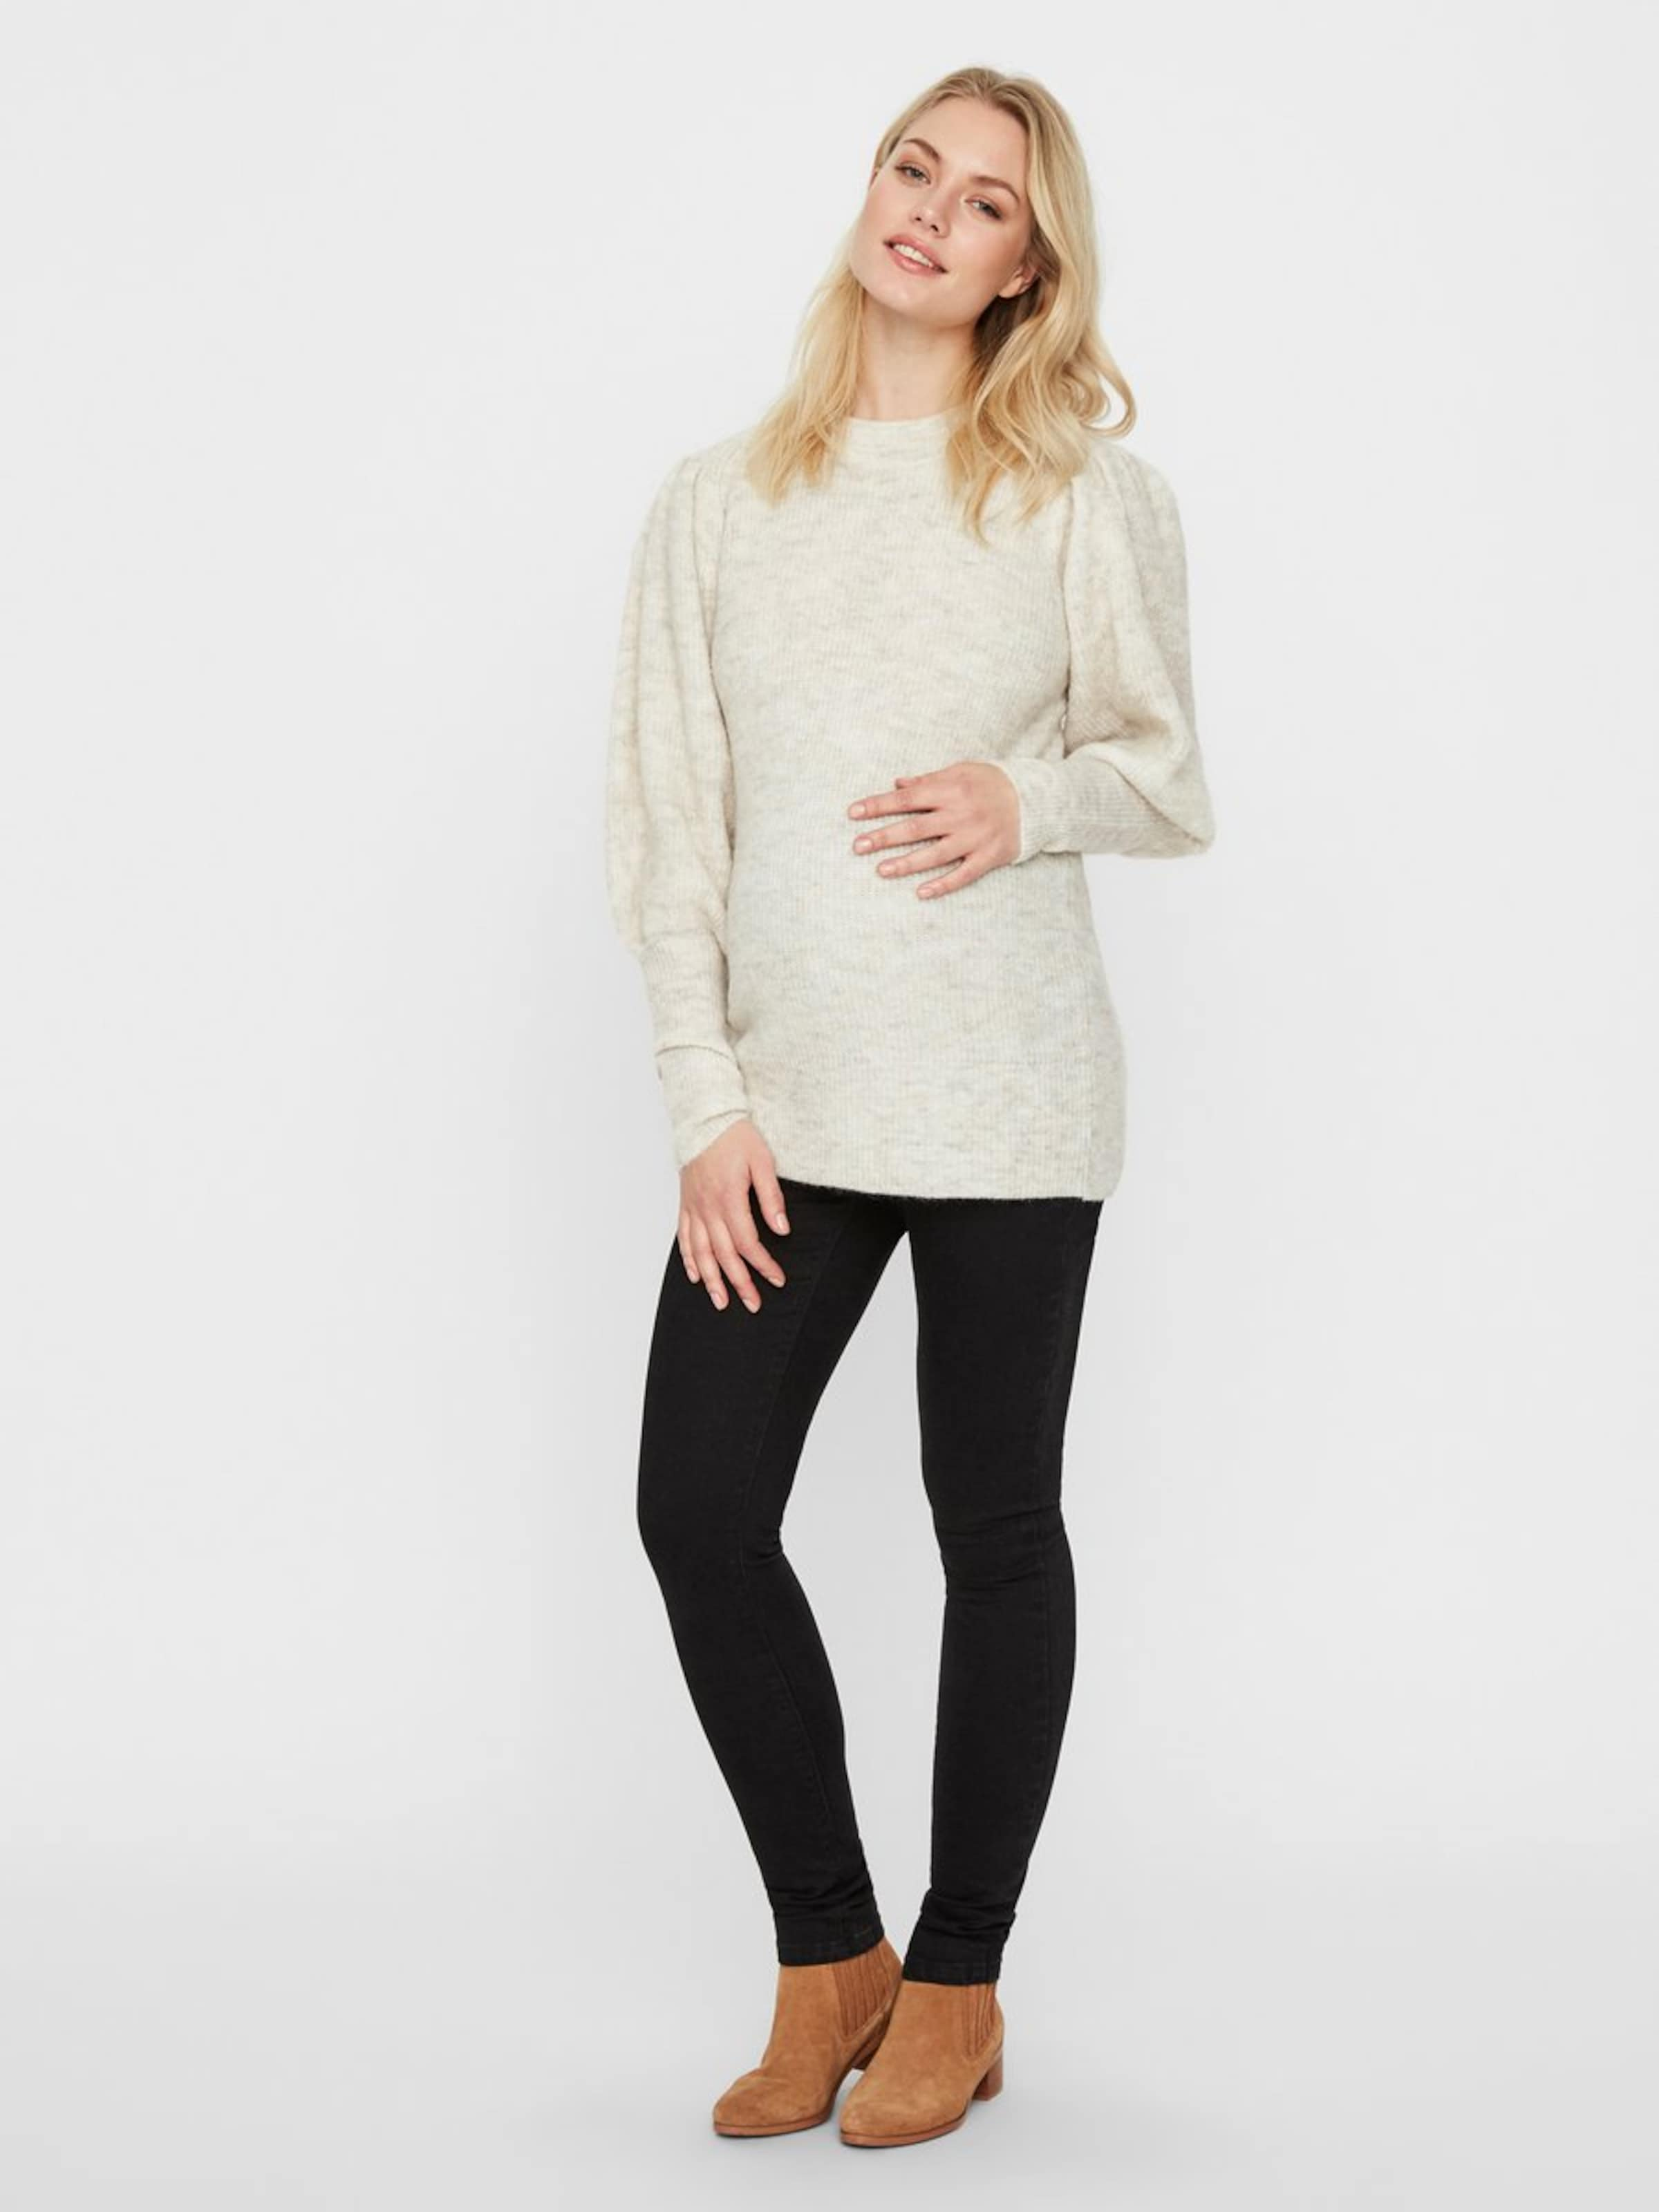 Creme Umstandsbluse In Mamalicious In Mamalicious Umstandsbluse RA45jL